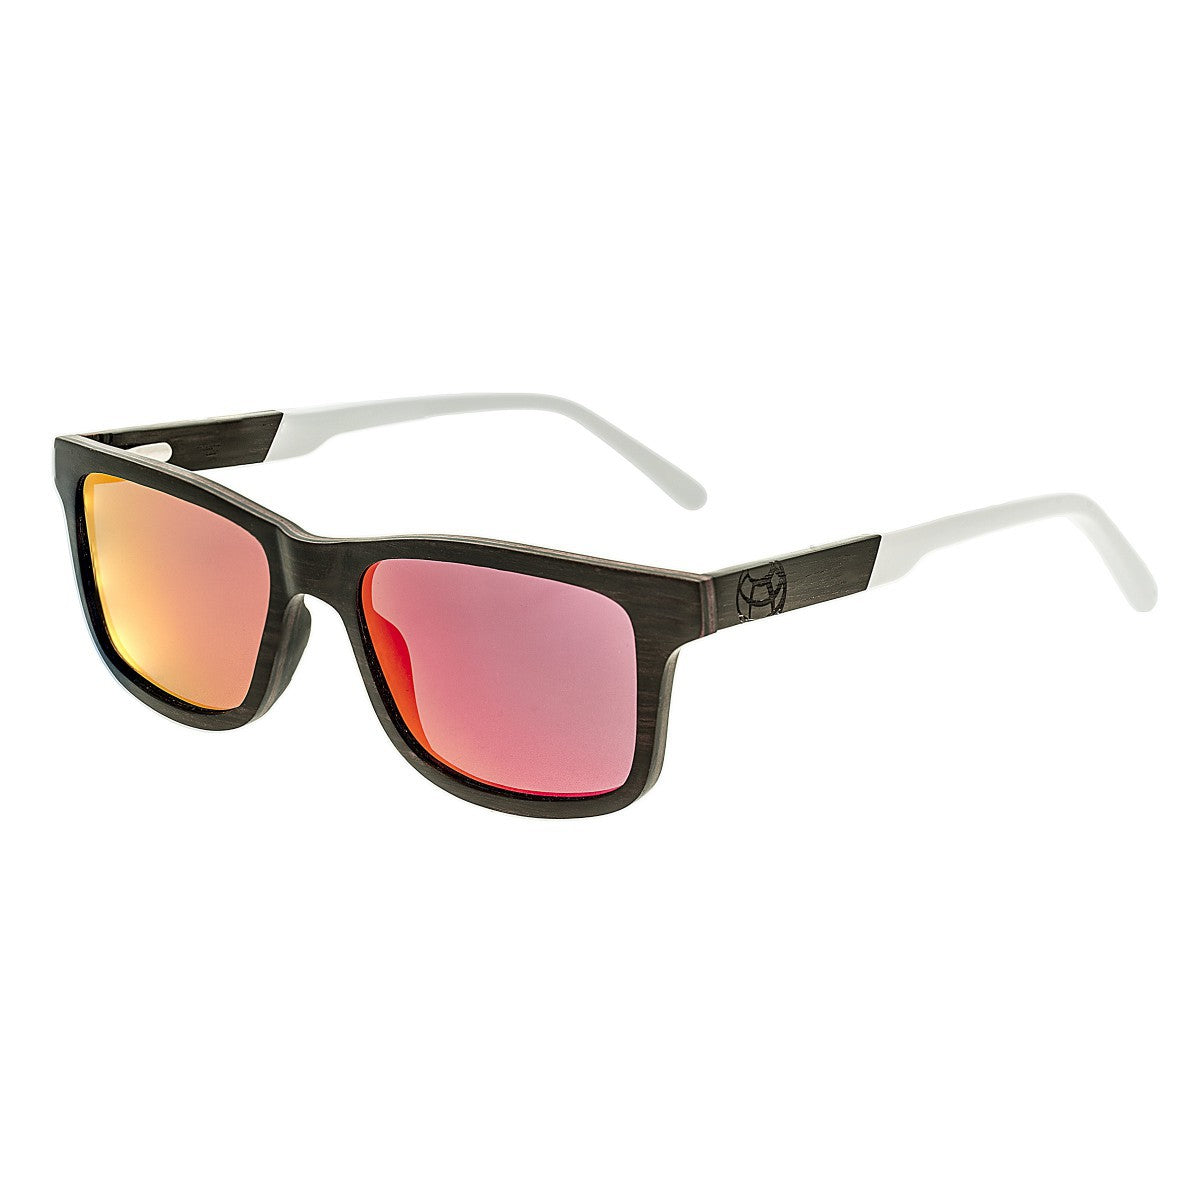 Earth Wood Tide Polarized Sunglasses - GENT.ONE